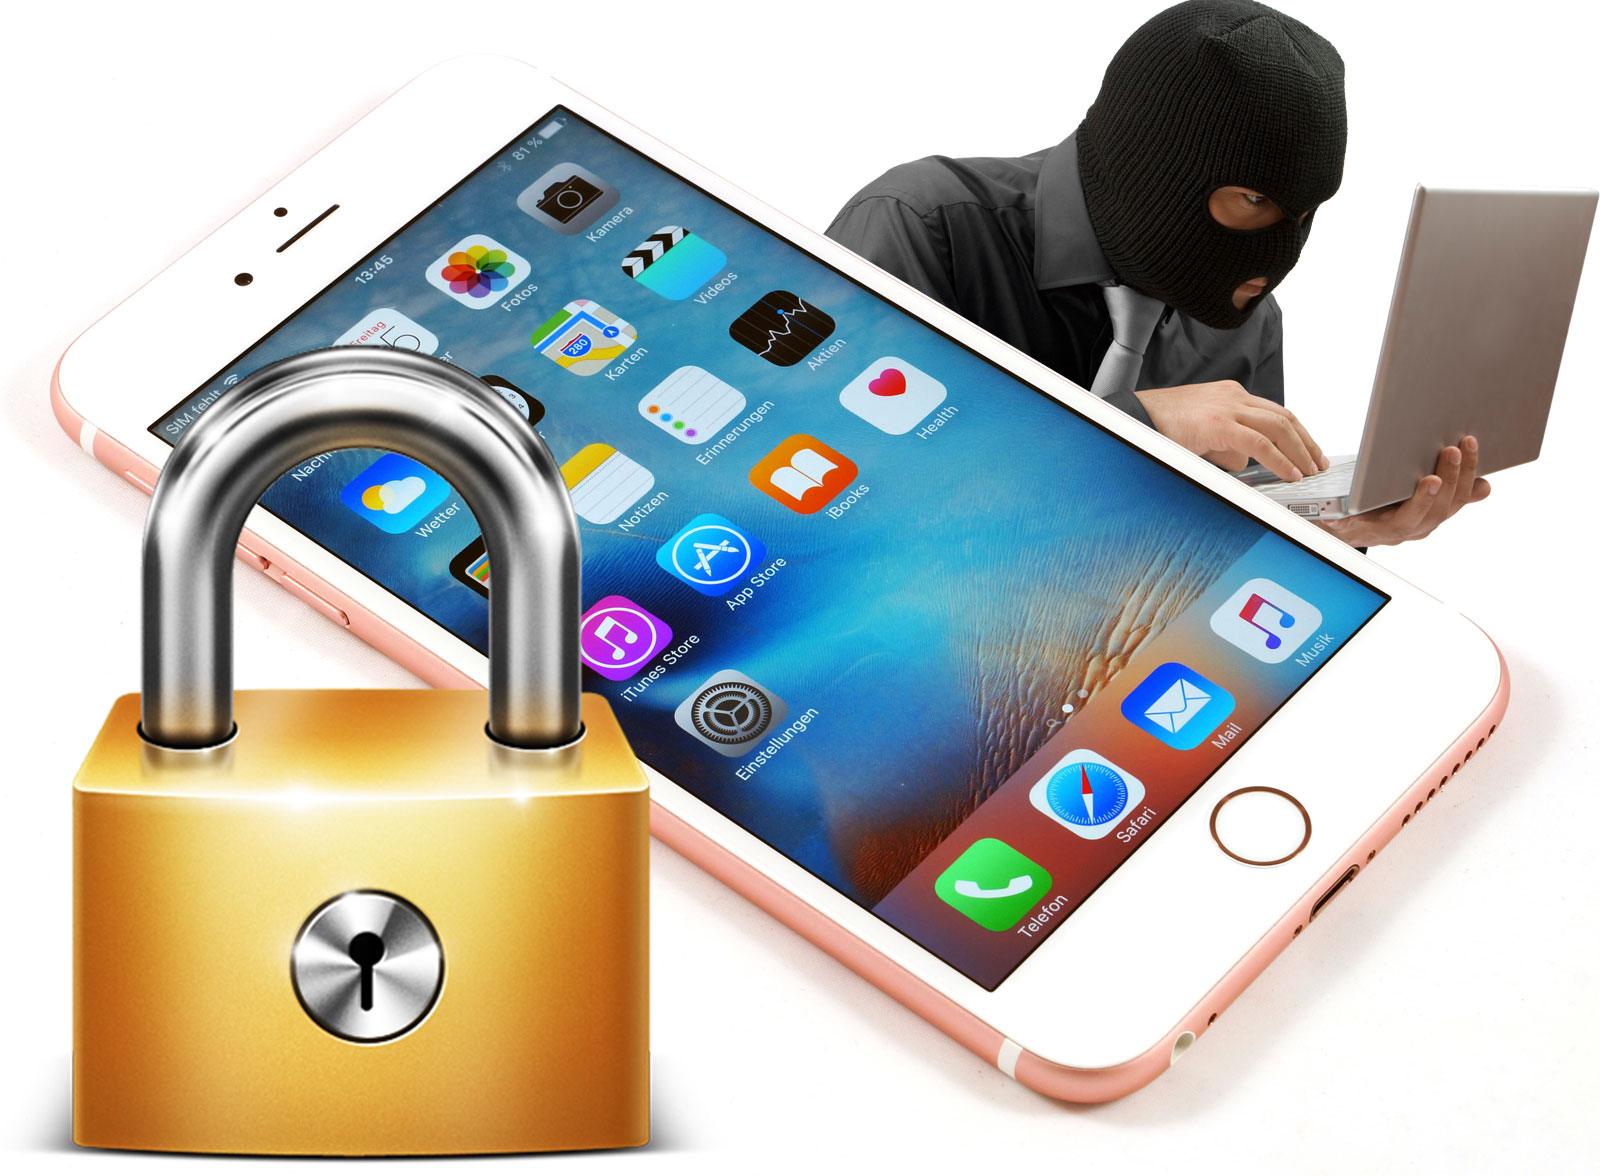 Seguridad en el iPhone